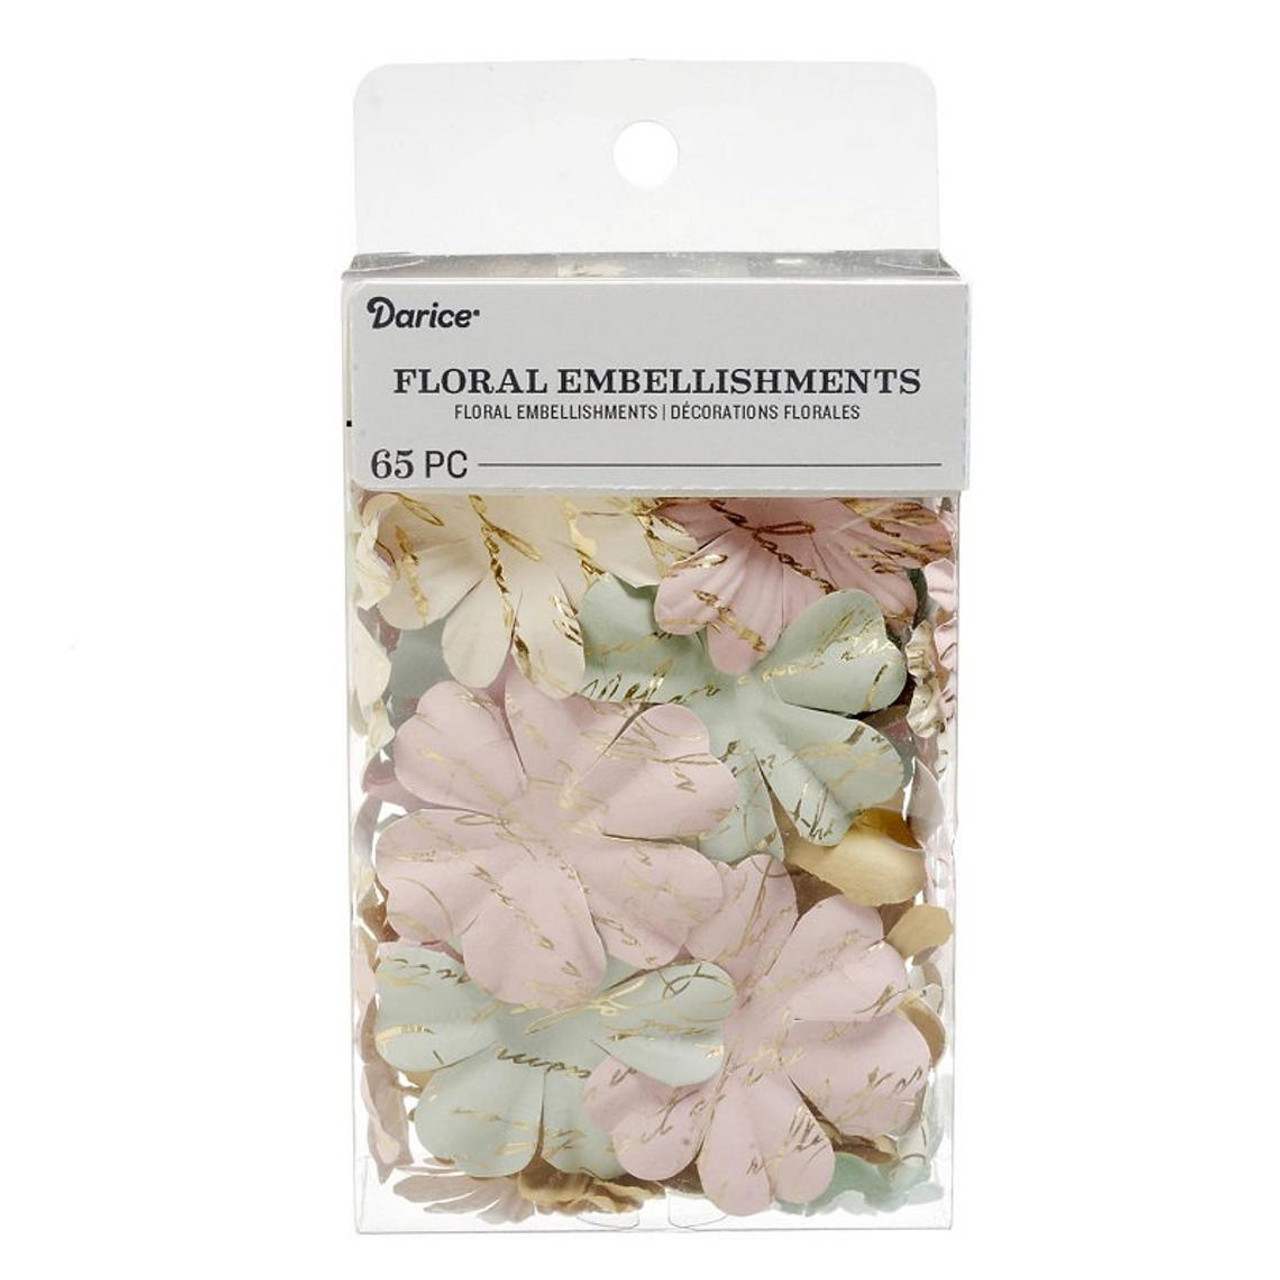 Floral Embellishments Collection Pastel Printed Petals 1.25 to 1.75 inch Blooms Scrapbook Embellishment by Darice - 65 Pieces